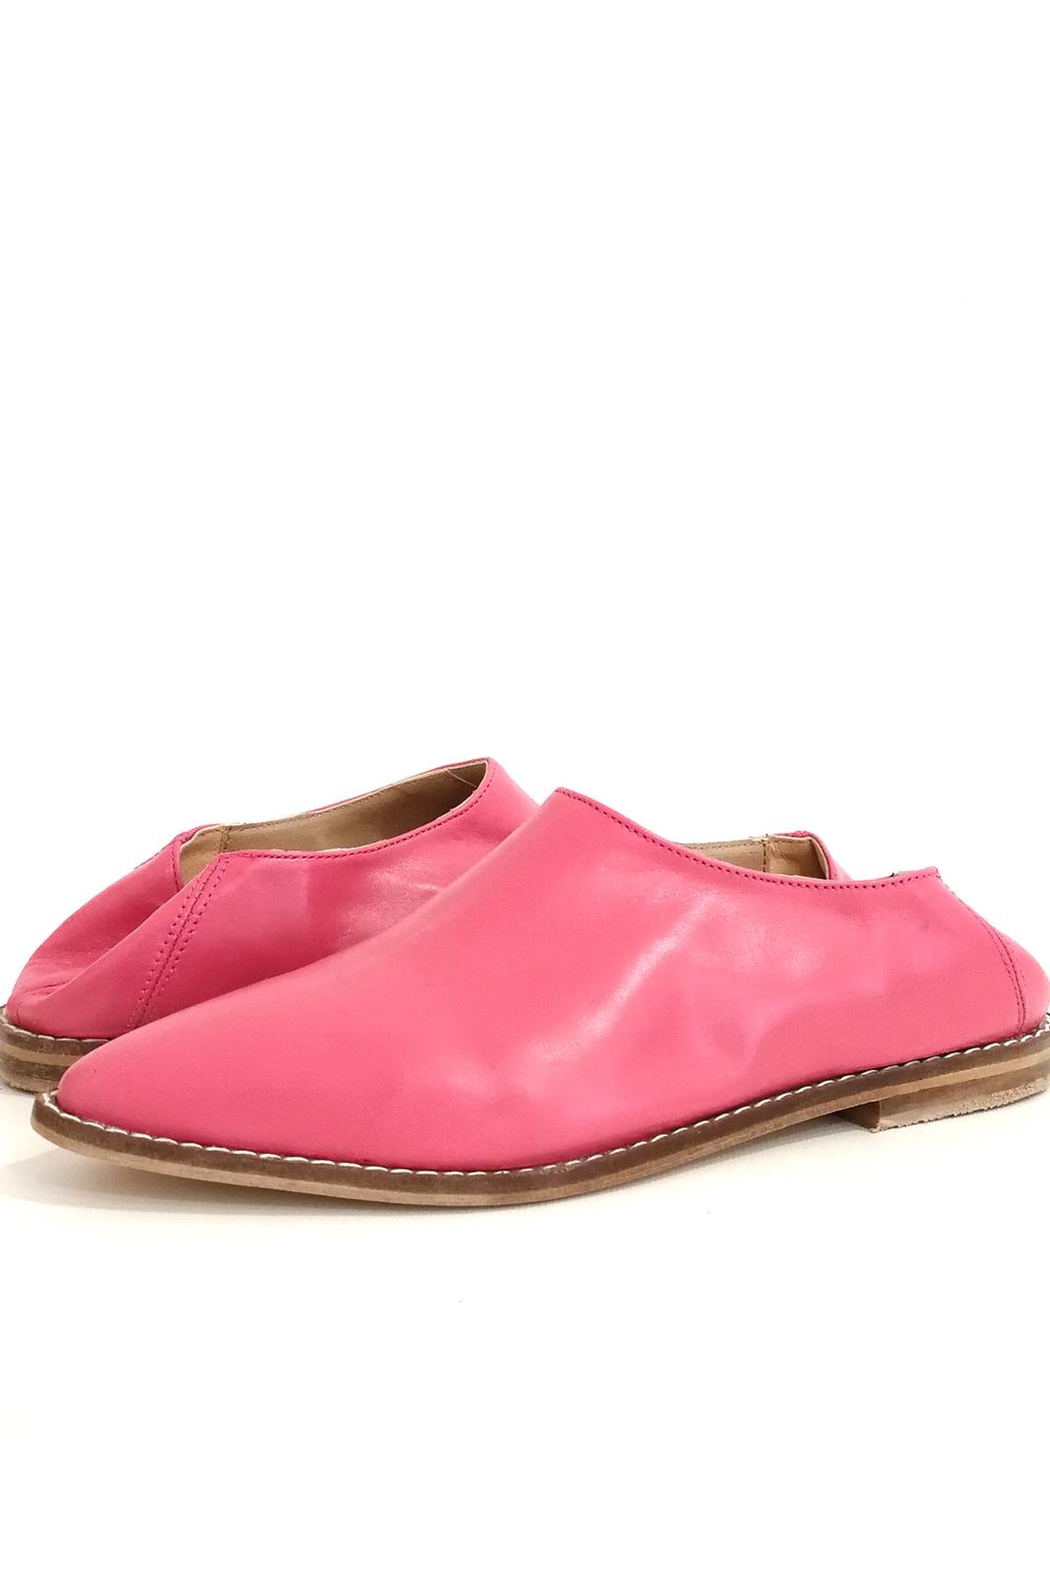 MIYE COLLAZZO Pink Mule Shoes - Side Cropped Image